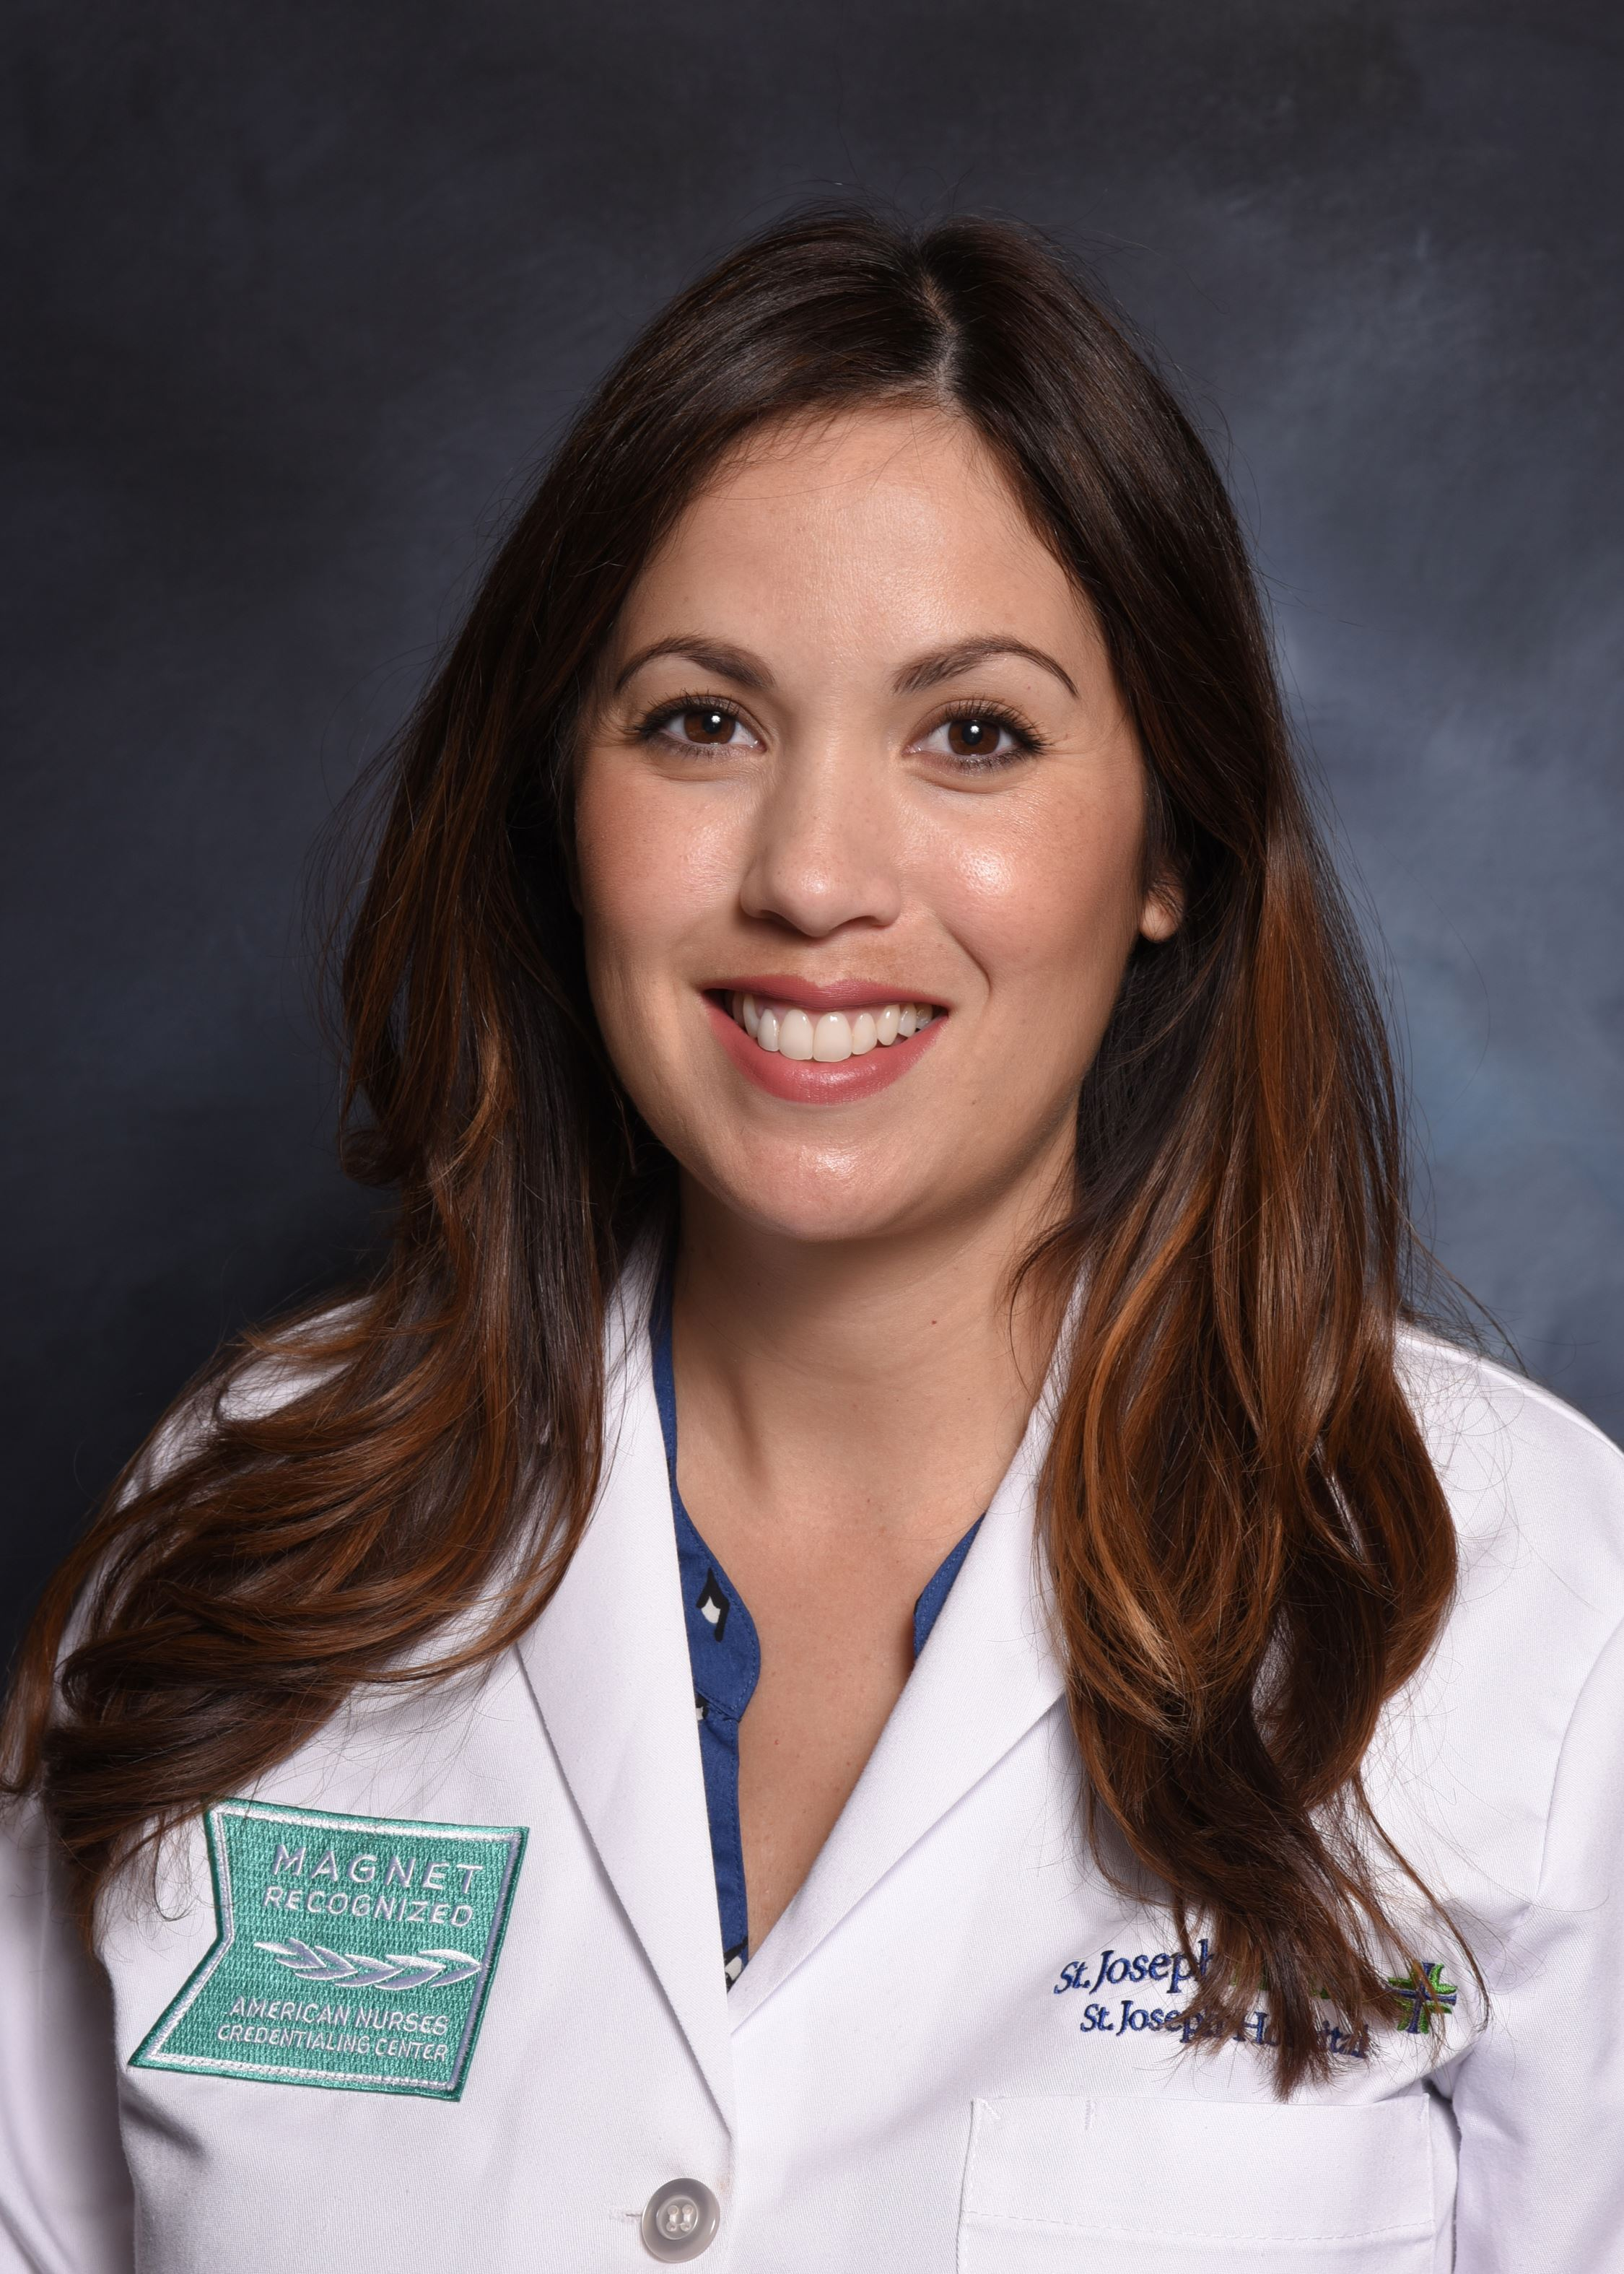 Maureen Villasenor, MD